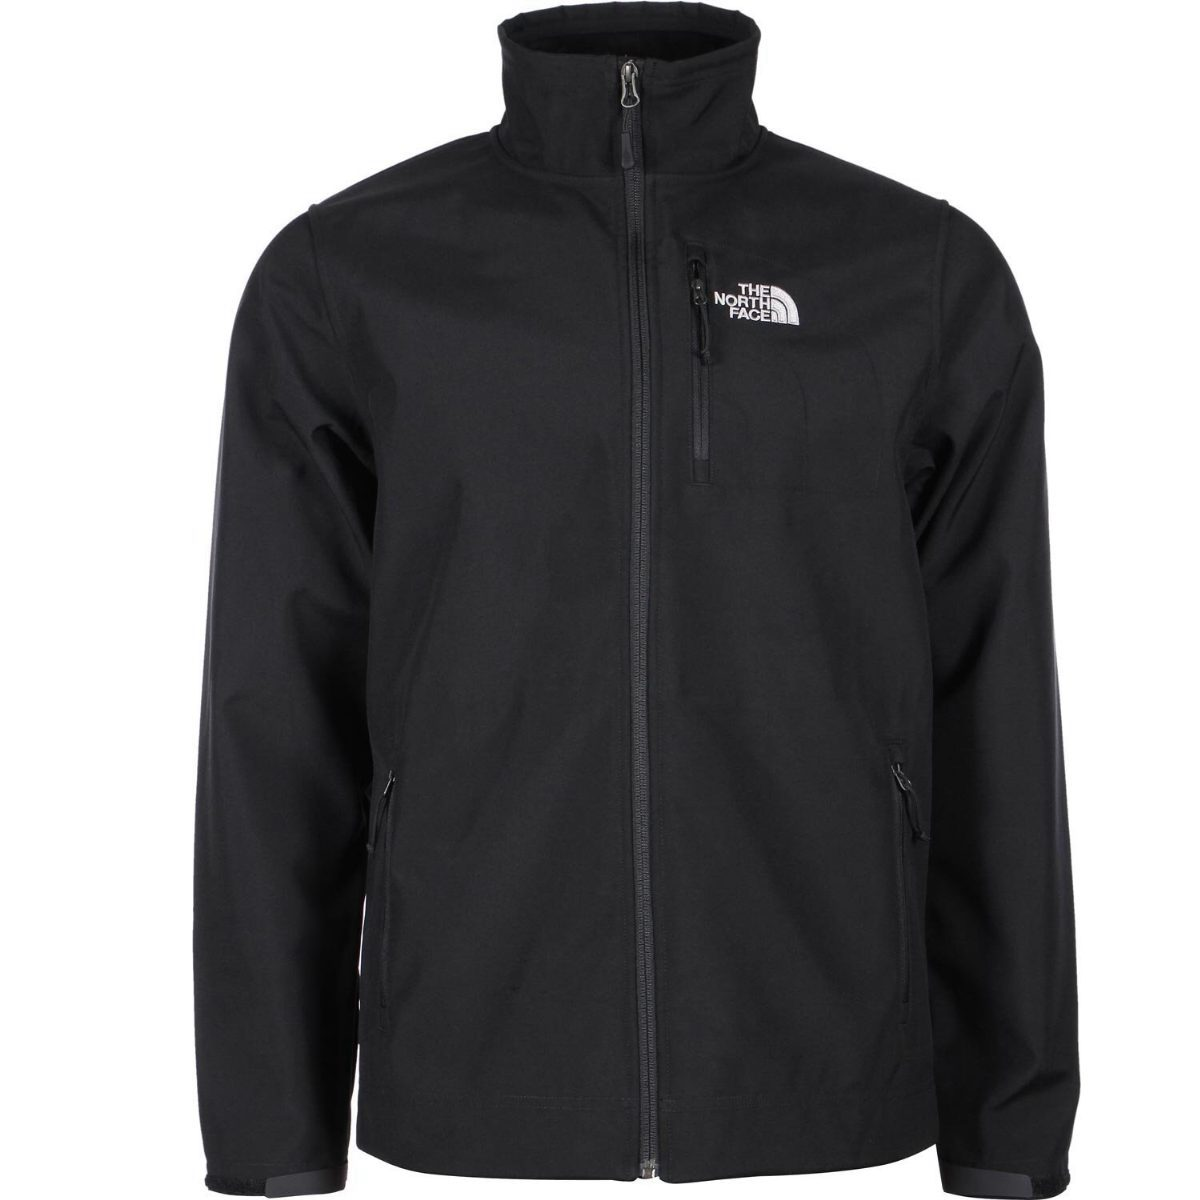 the north face durango jacket jacke softshelljacke herren schwarz blau ebay. Black Bedroom Furniture Sets. Home Design Ideas